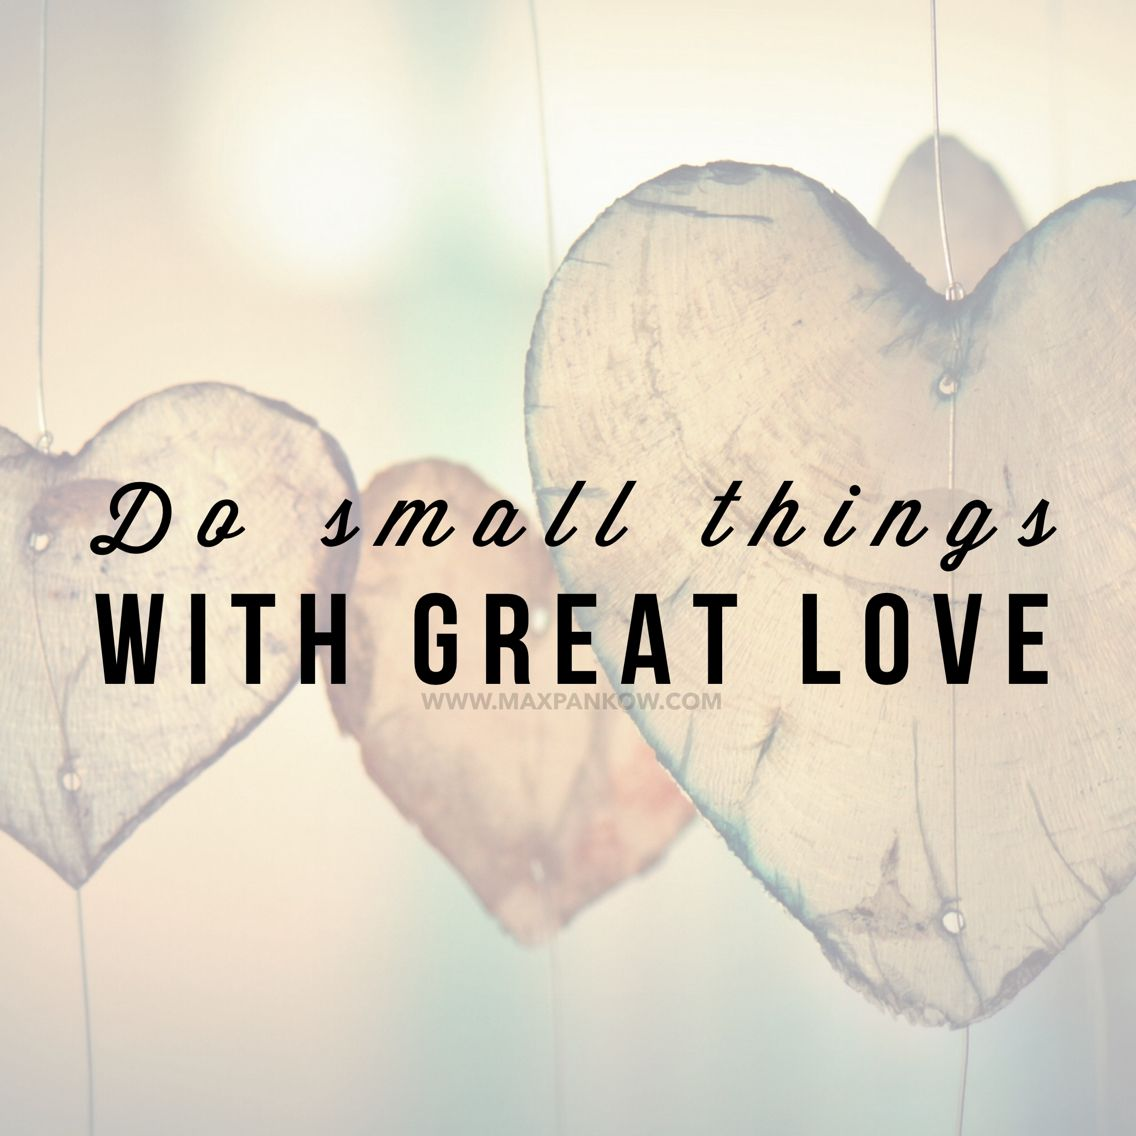 When you put your heart into everything you do, the world becomes a better place  Do small things with great love!